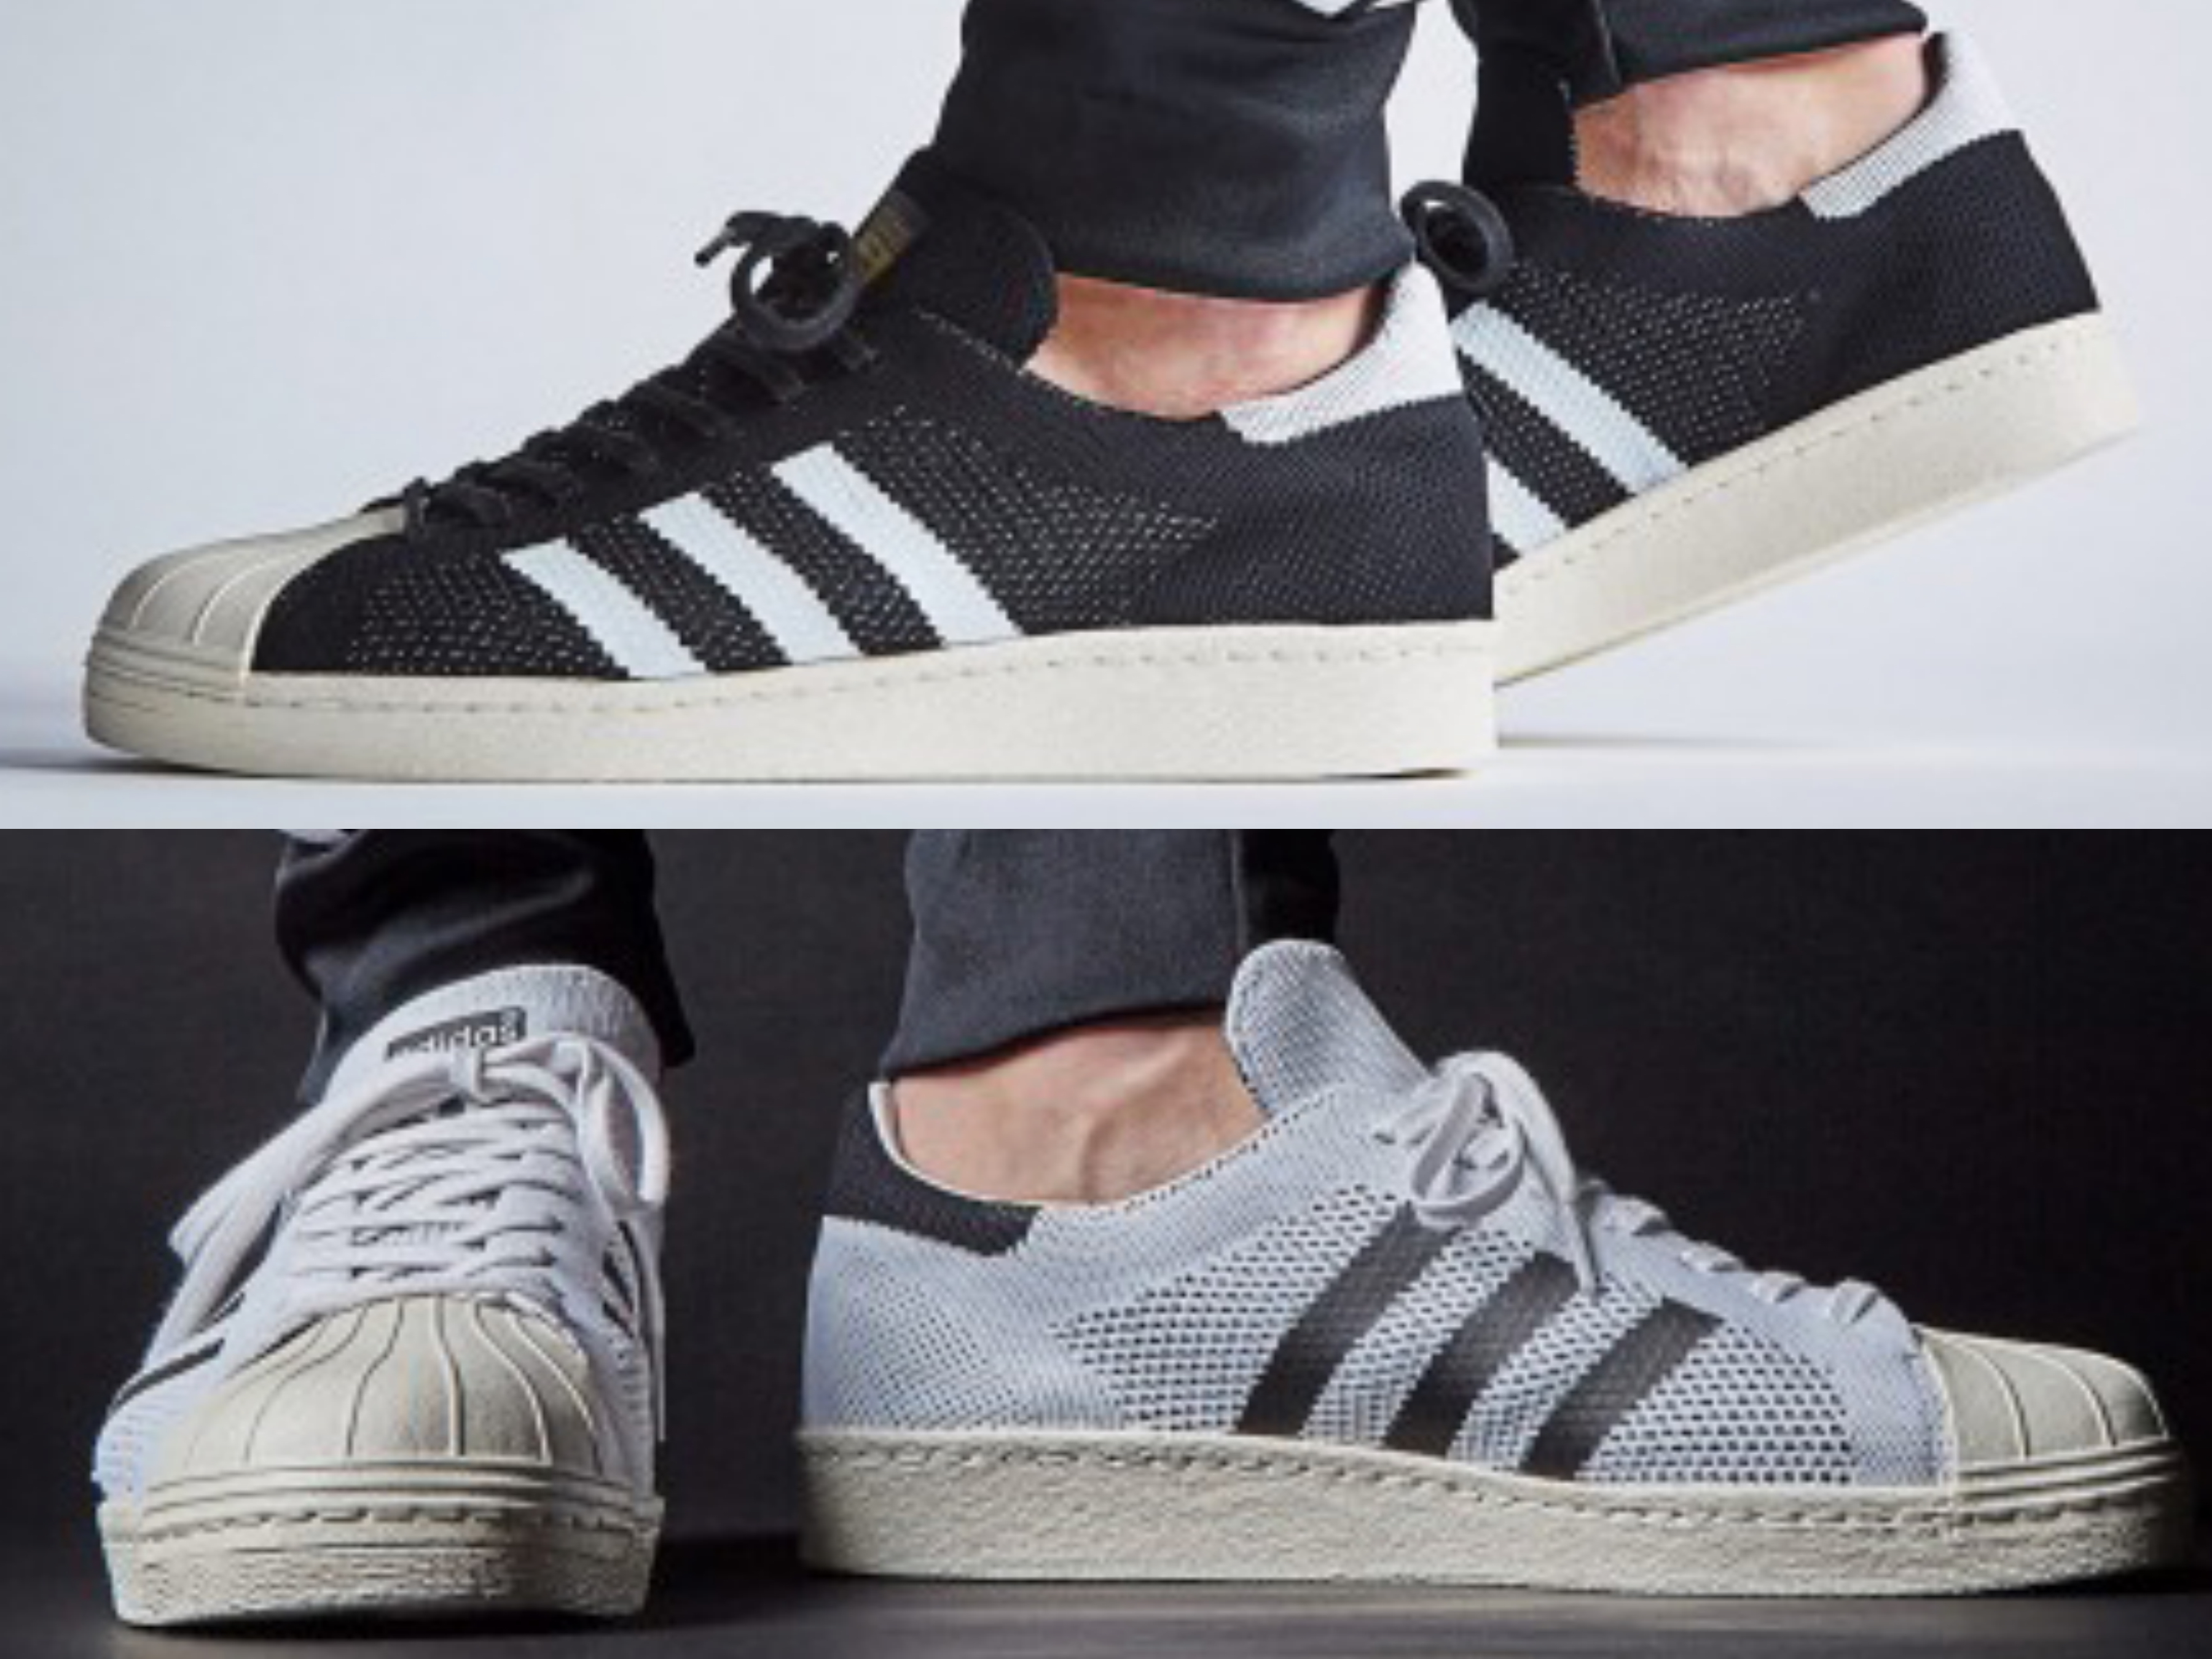 The adidas Superstar 80s Primeknit Just Dropped